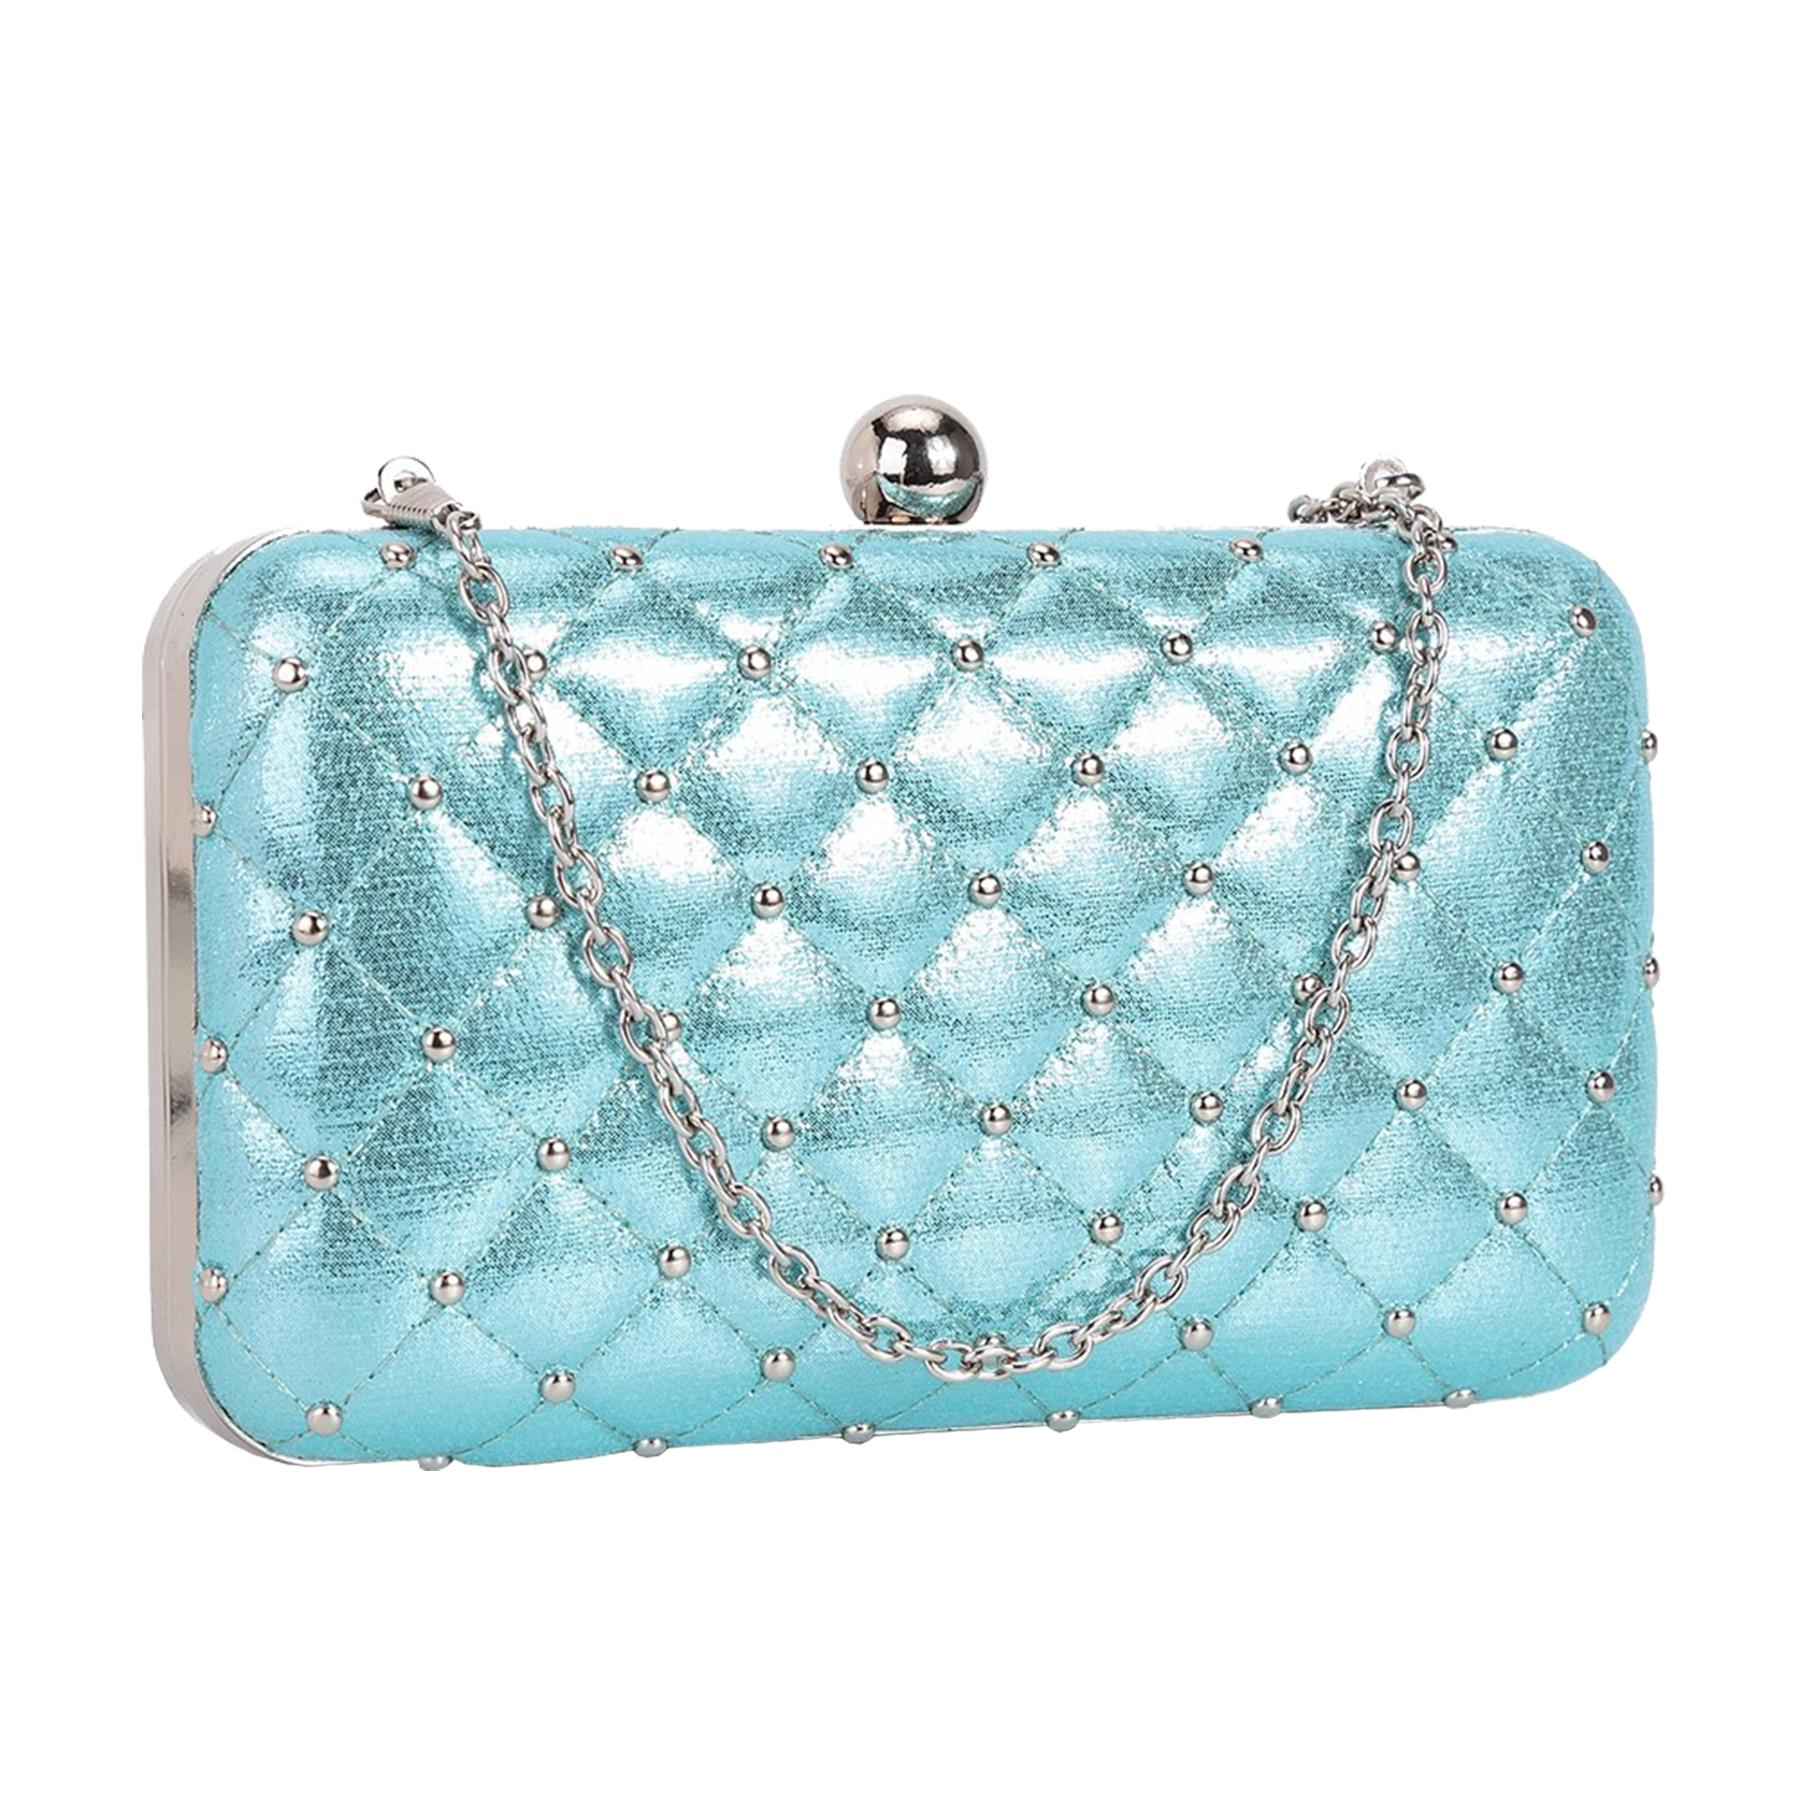 New-Women-s-Quilted-Studded-Faux-Leather-Party-Bridal-Prom-Box-Clutch-Bag thumbnail 3